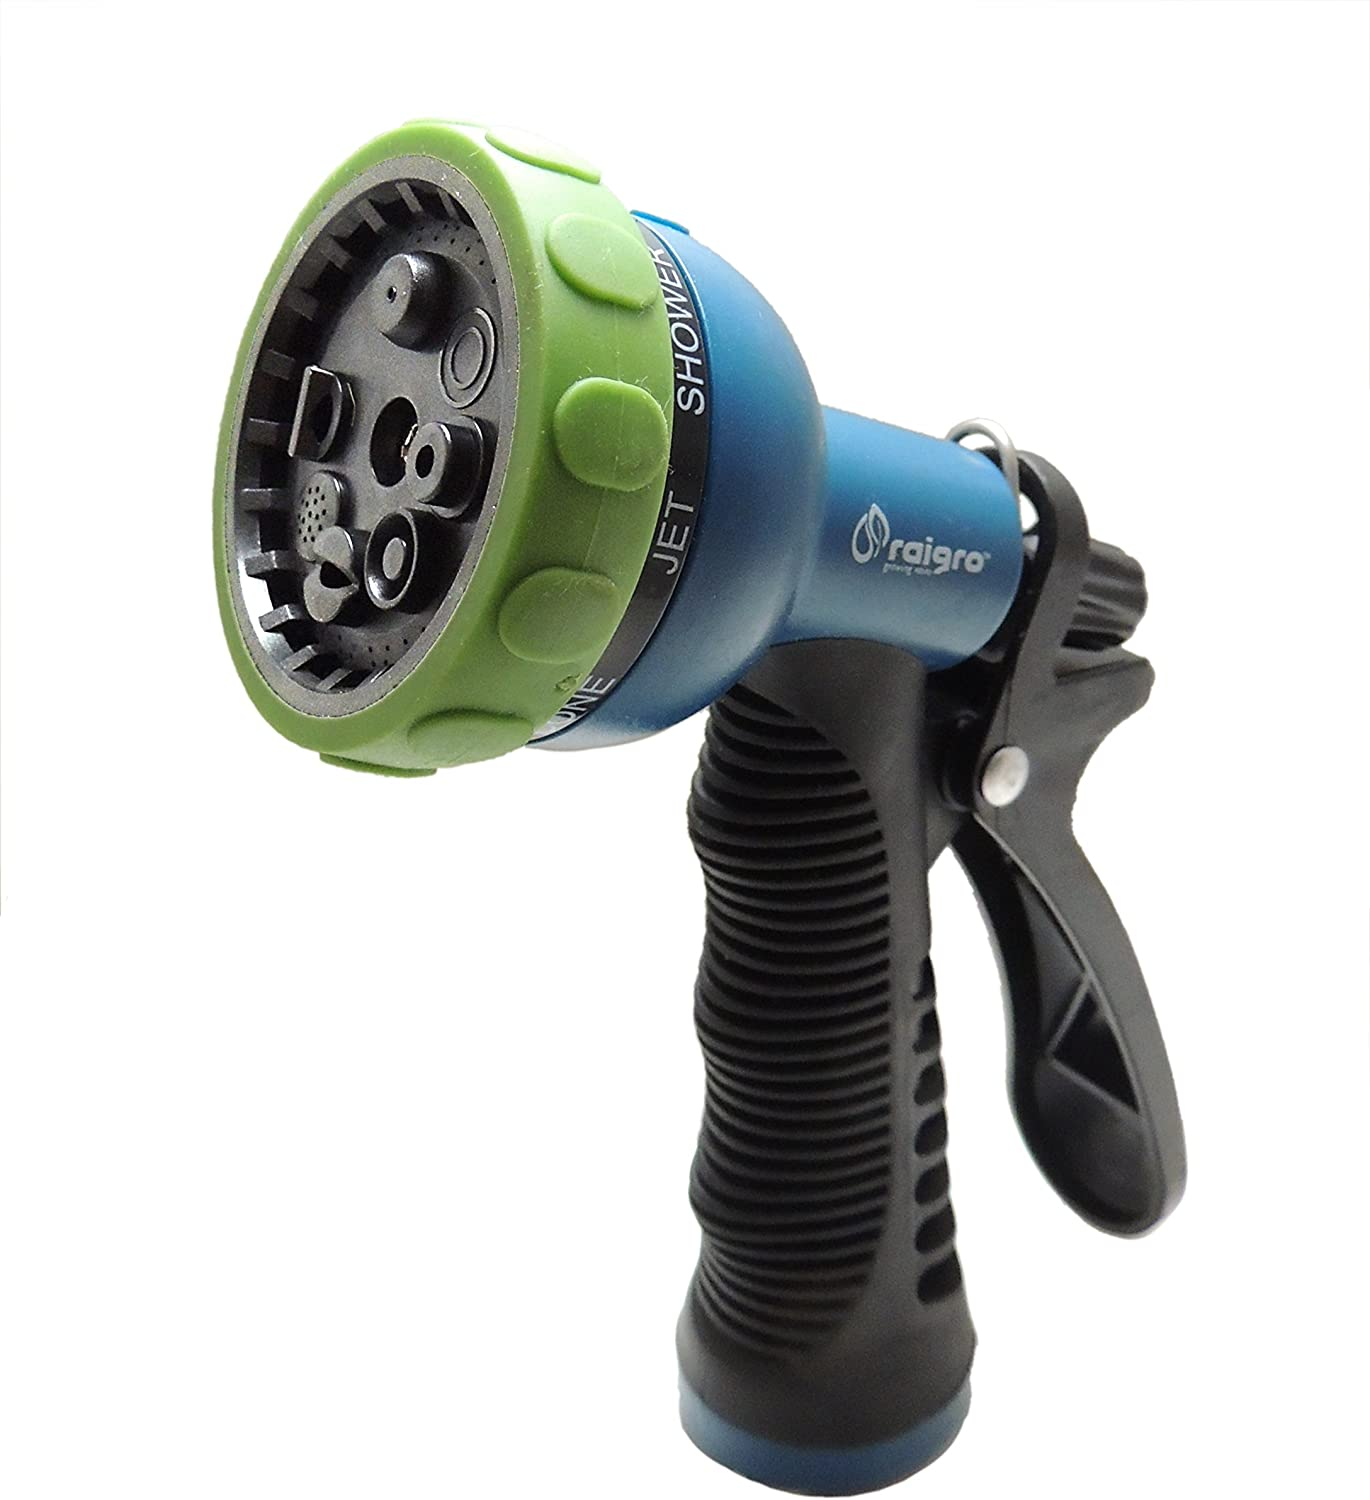 Raigro Classic Pull-Trigger Lawn and Garden Hose Spray Nozzle - Convenience, Versatility, And 8 Spray Patterns!